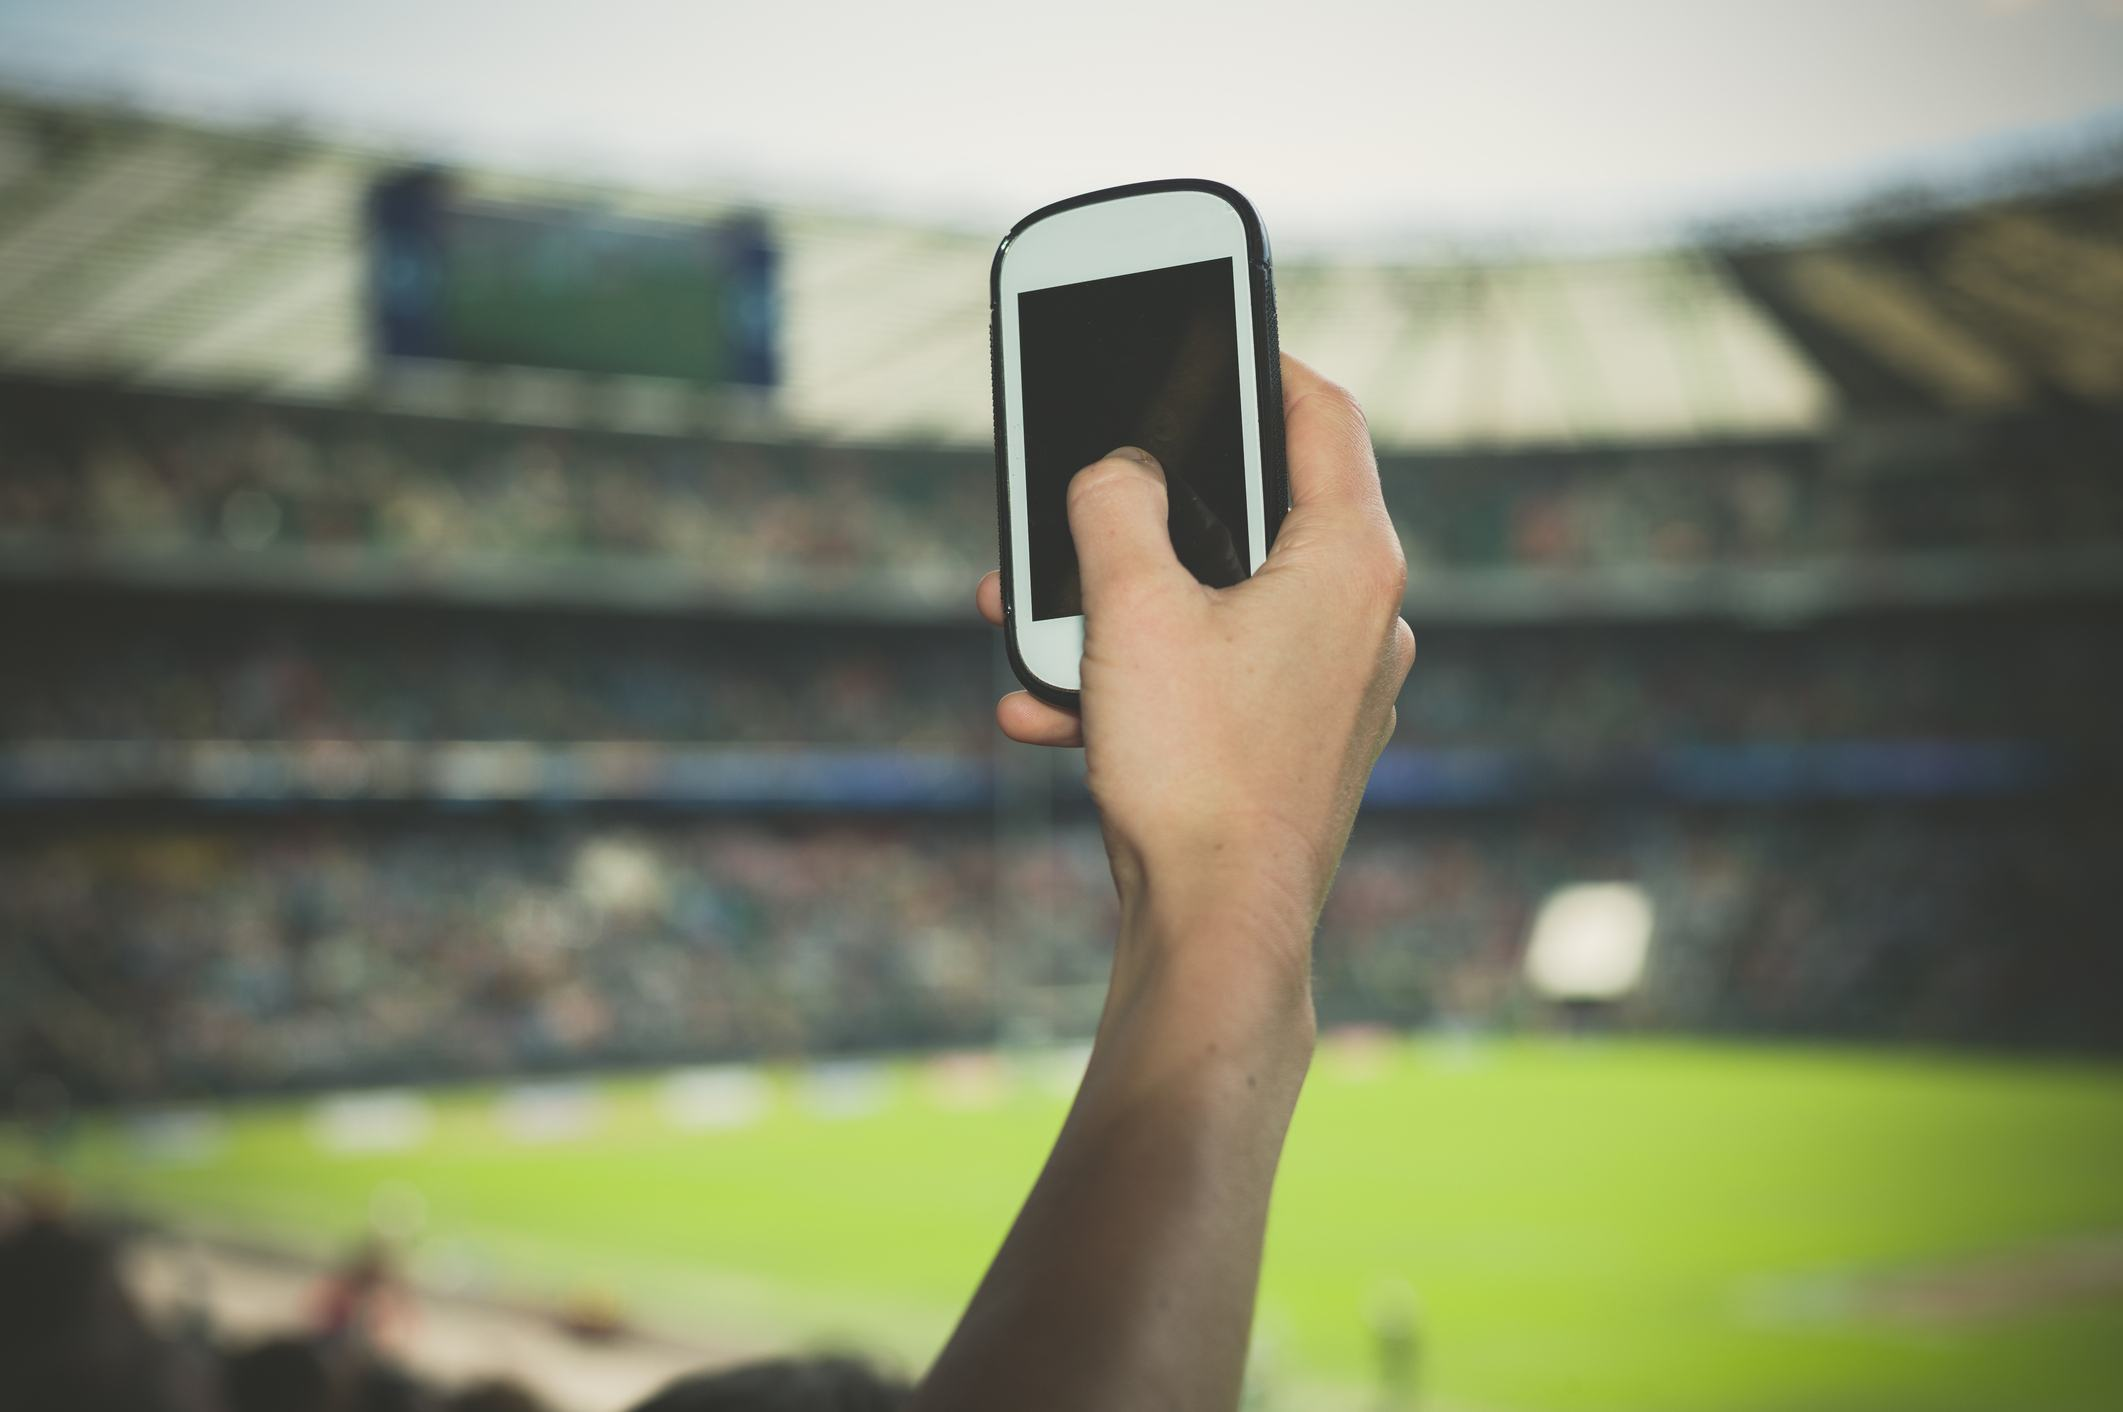 A female hand is holding a smartphone